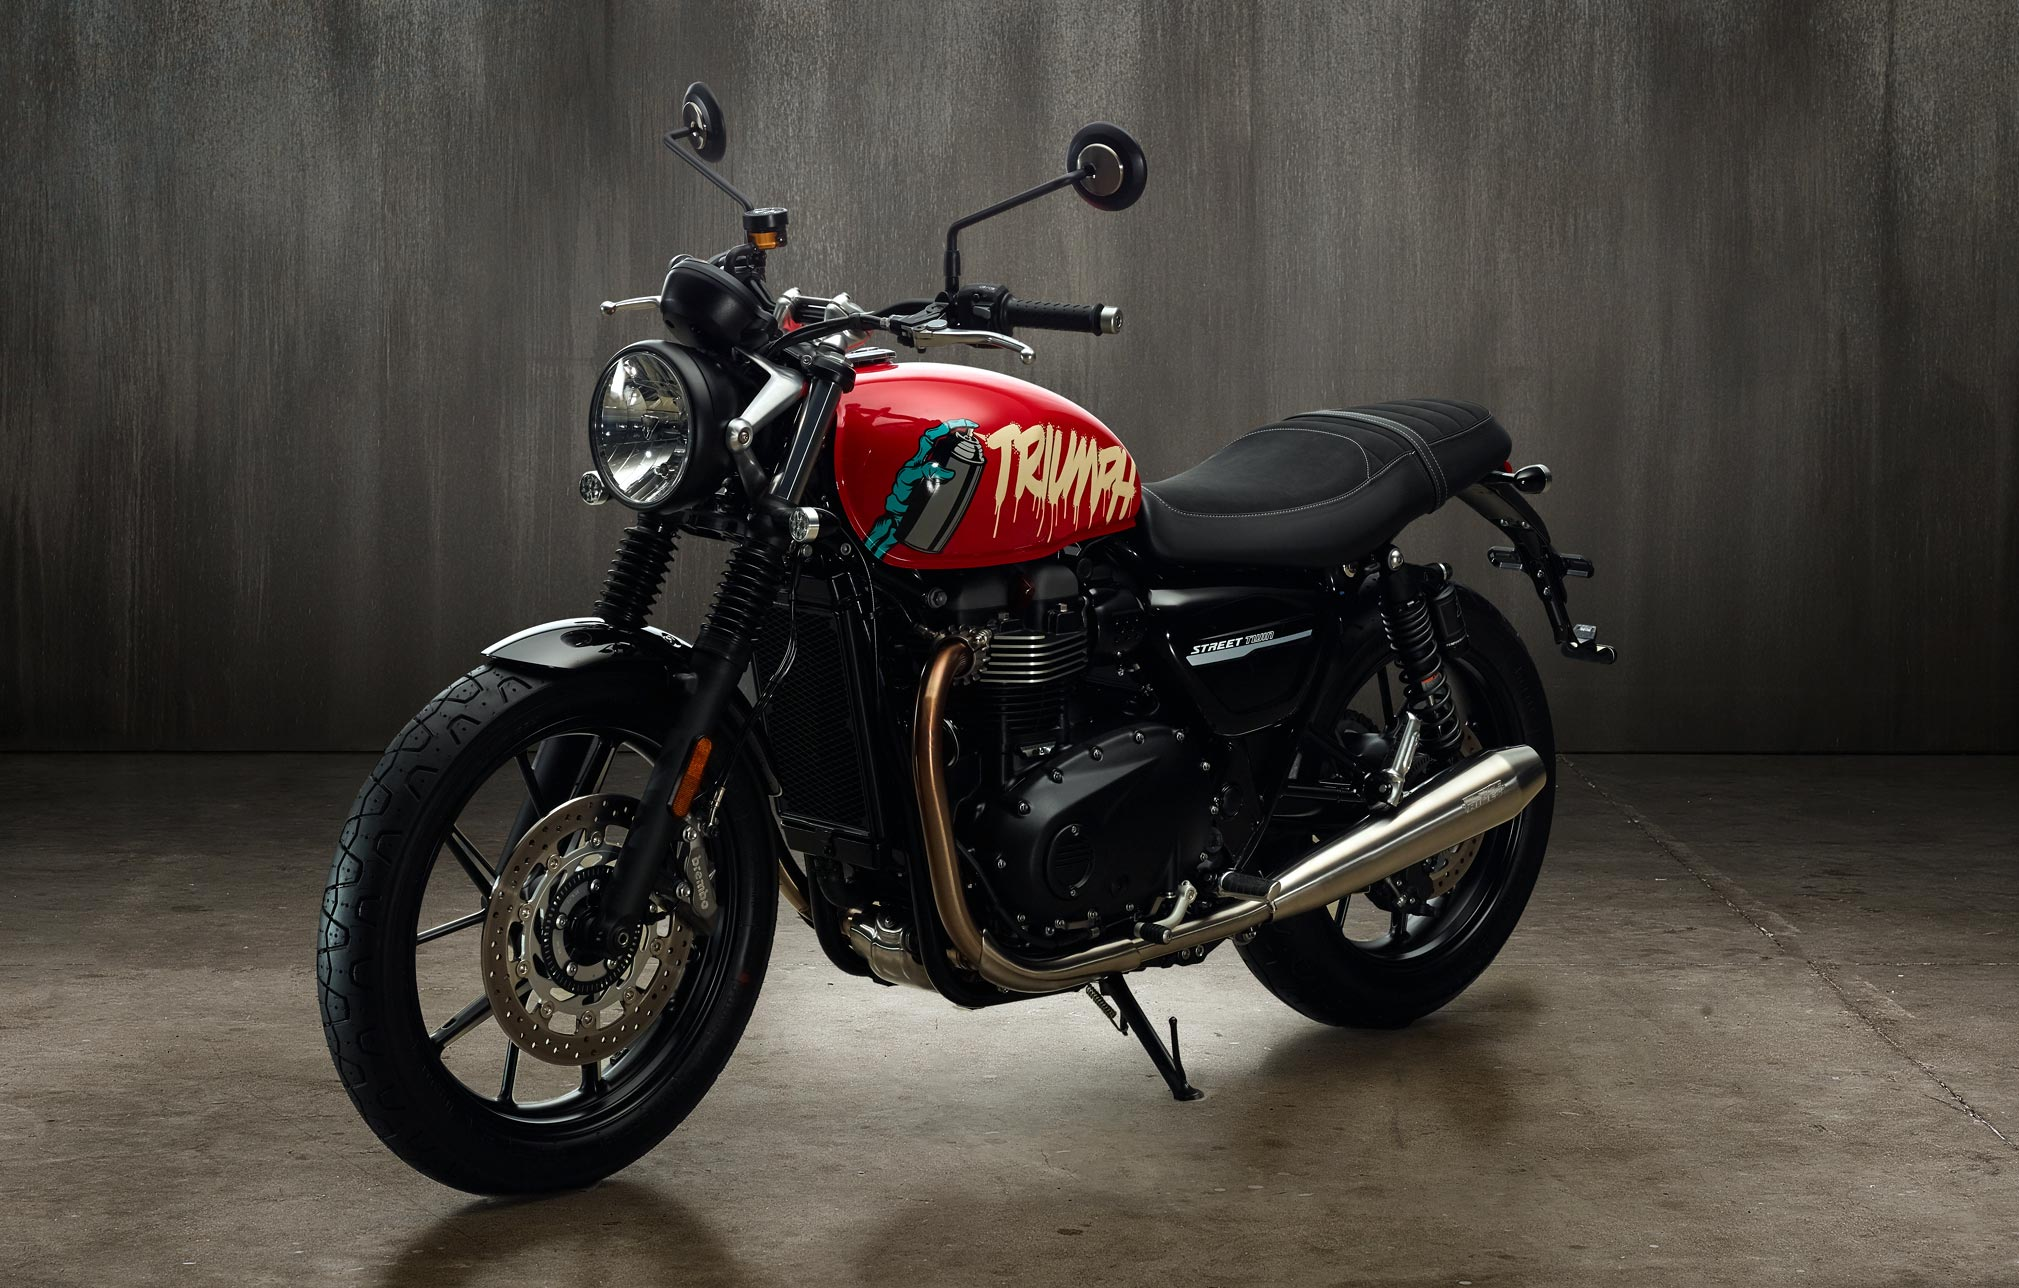 2019 Triumph Street Twin Guide • Total Motorcycle